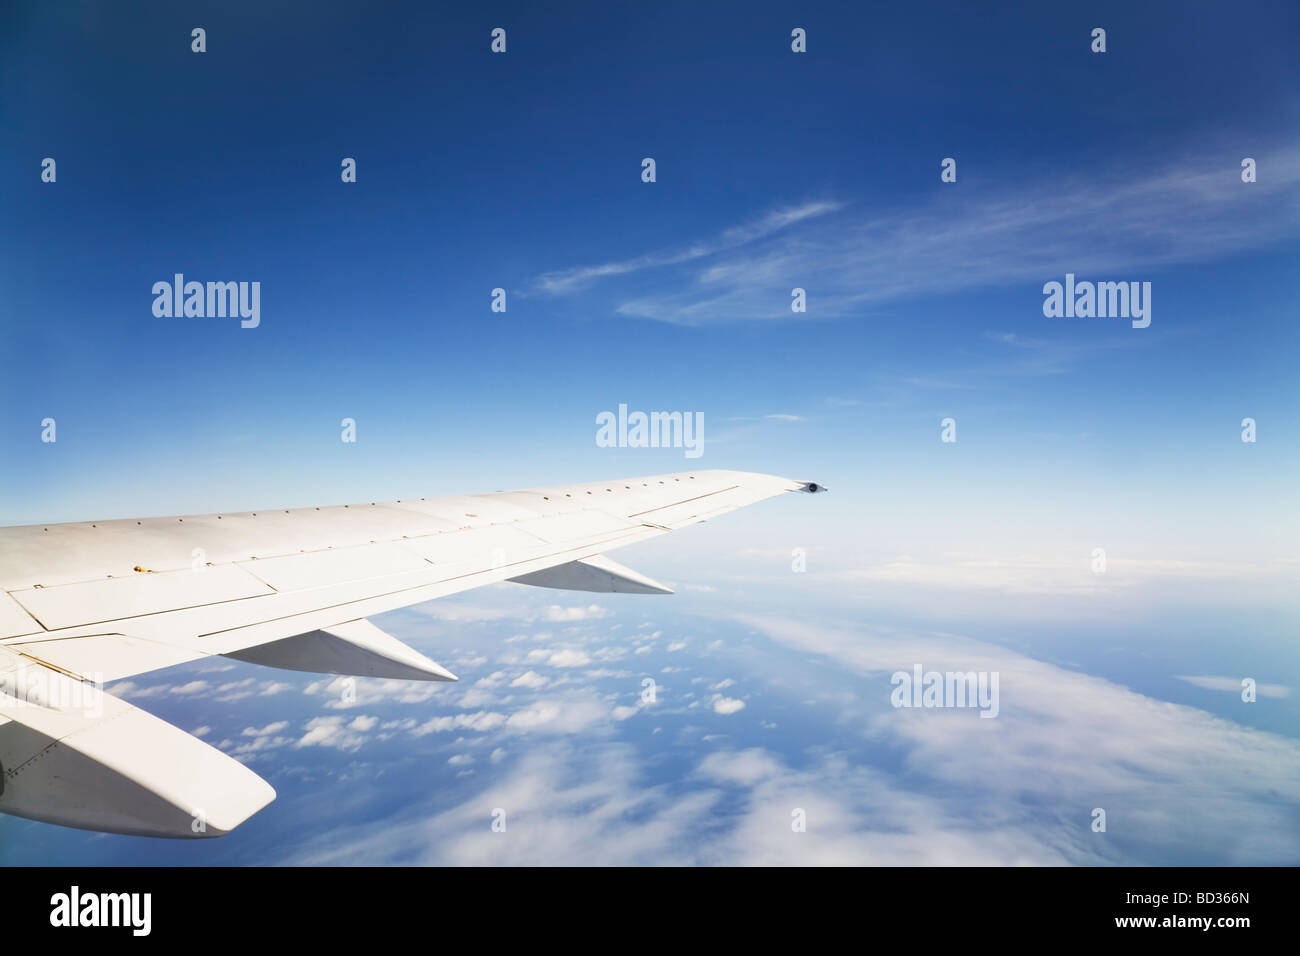 View from an aircraft window of an airplane wing and the Earth below - Stock Image